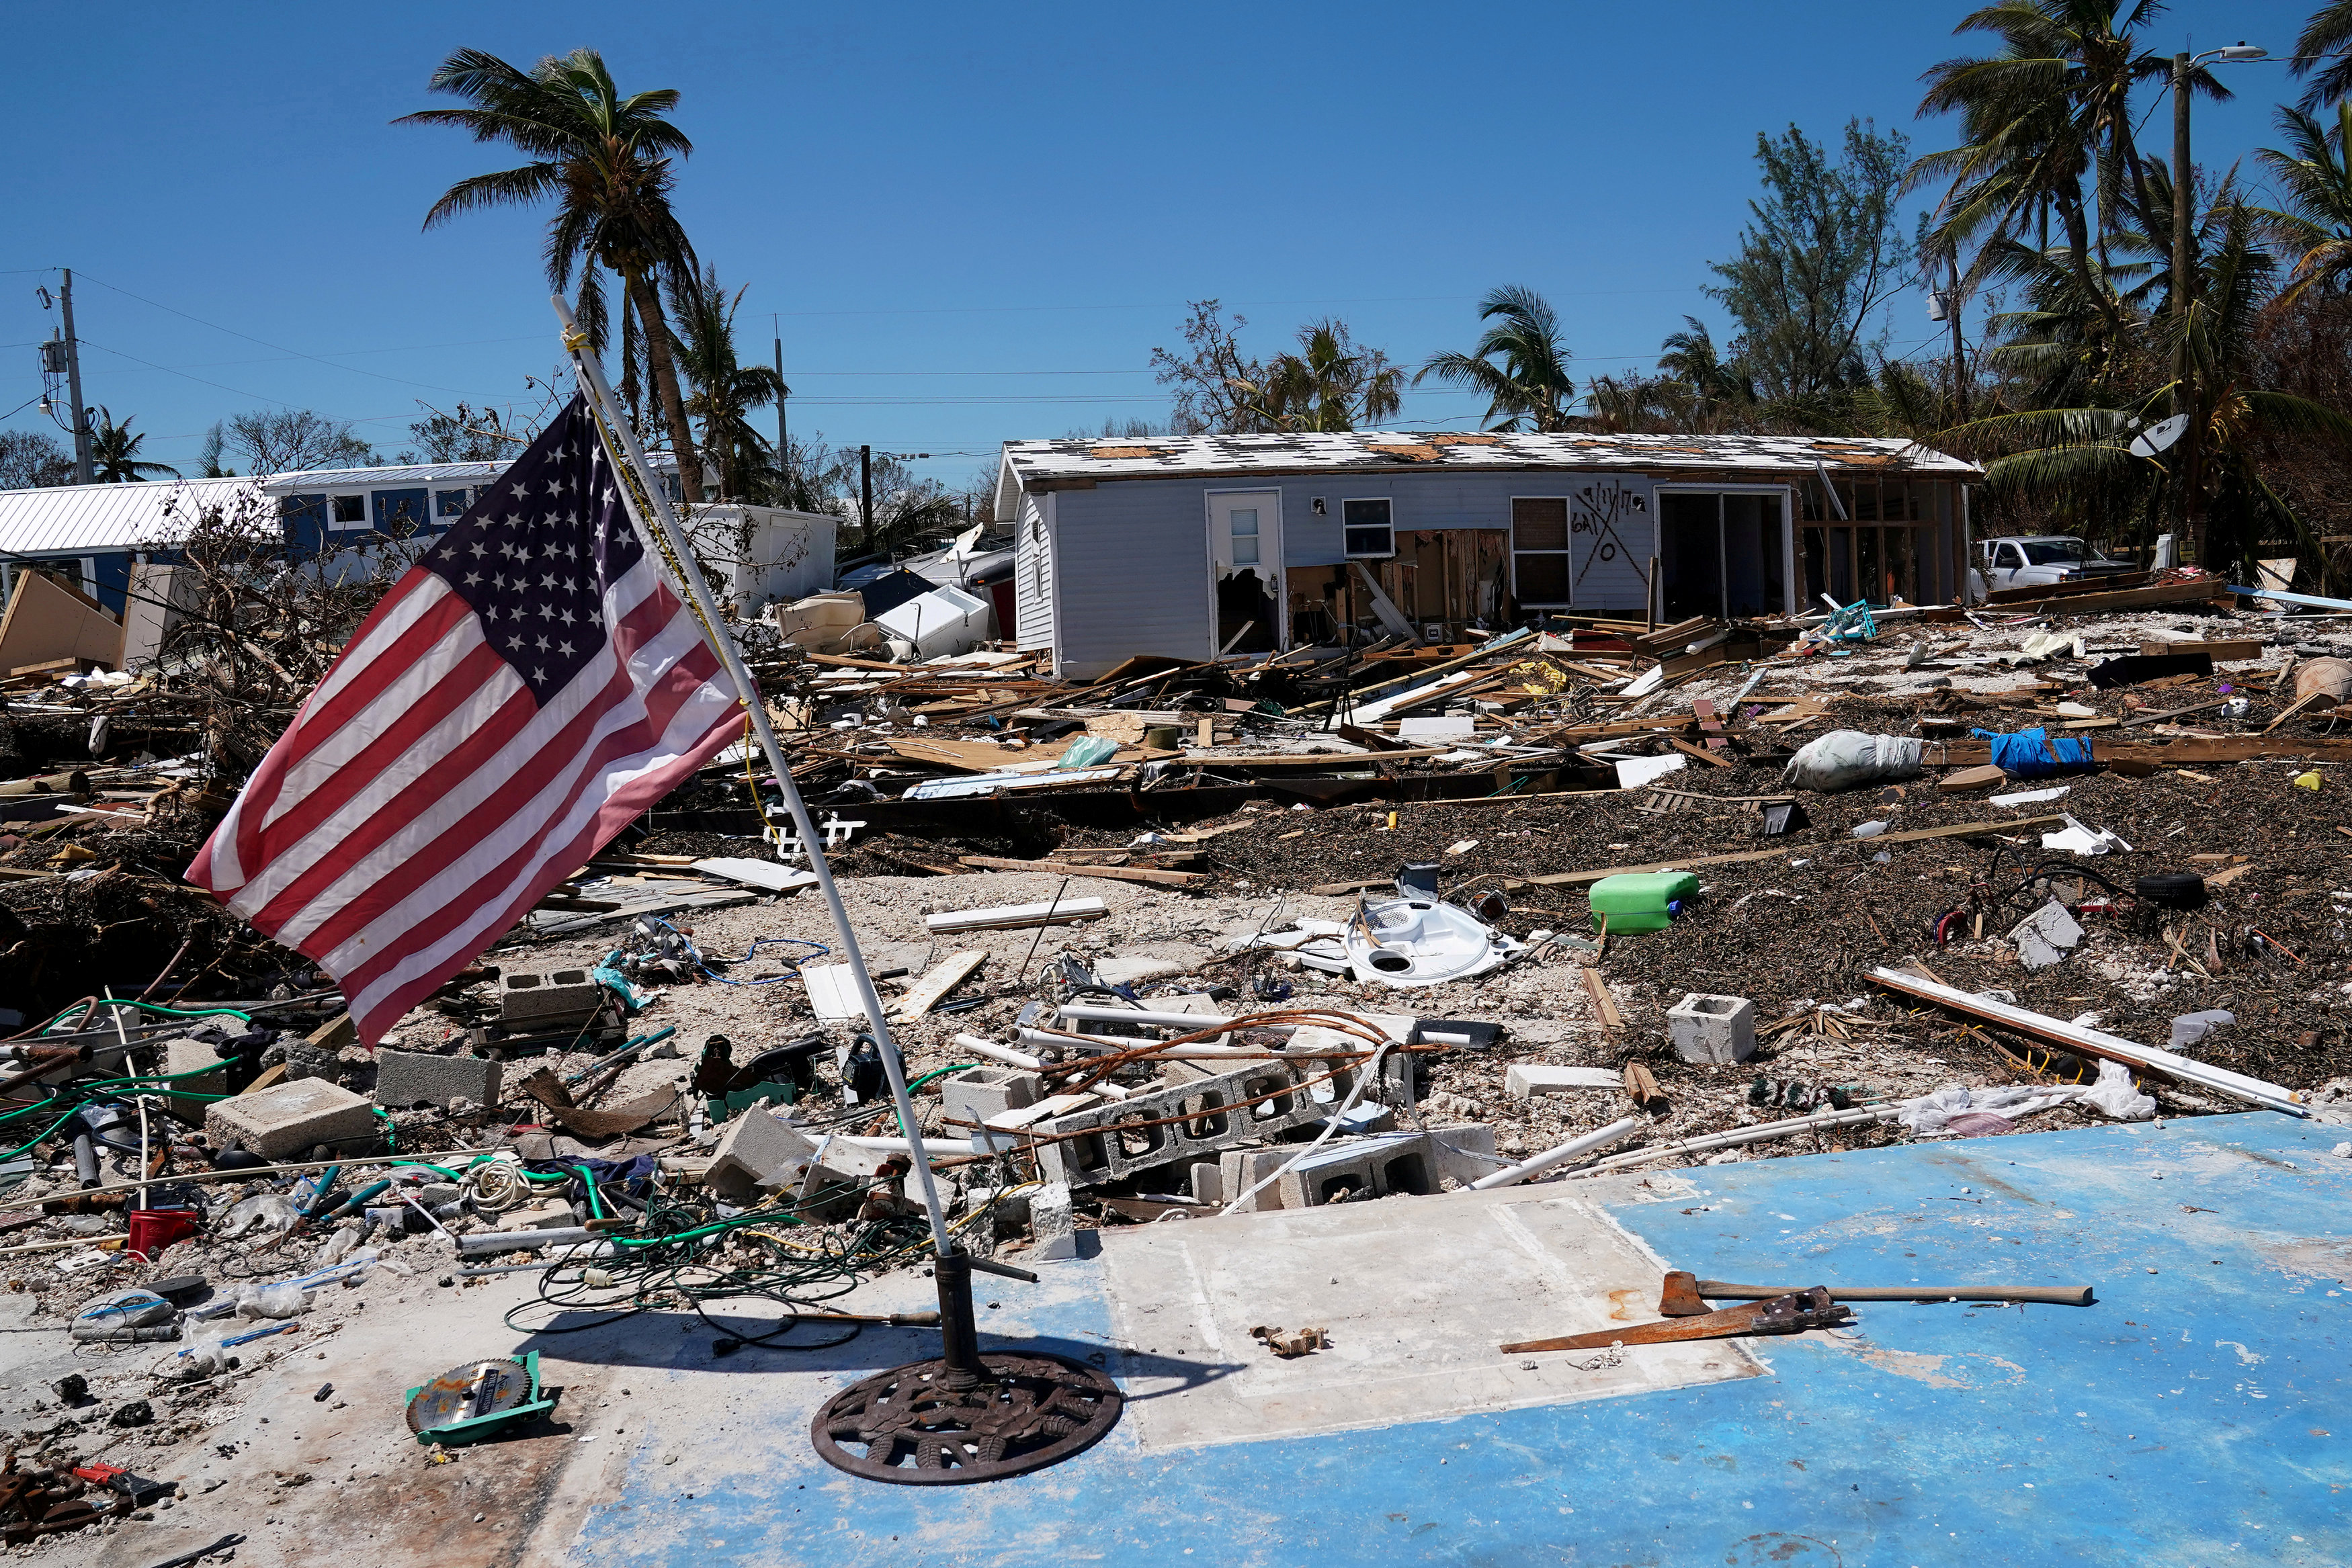 FILE PHOTO: A U.S. flag flies over a debris field of former houses following Hurricane Irma in Islamorada, Florida, U.S., September 15, 2017. REUTERS/Carlo Allegri/File Photo